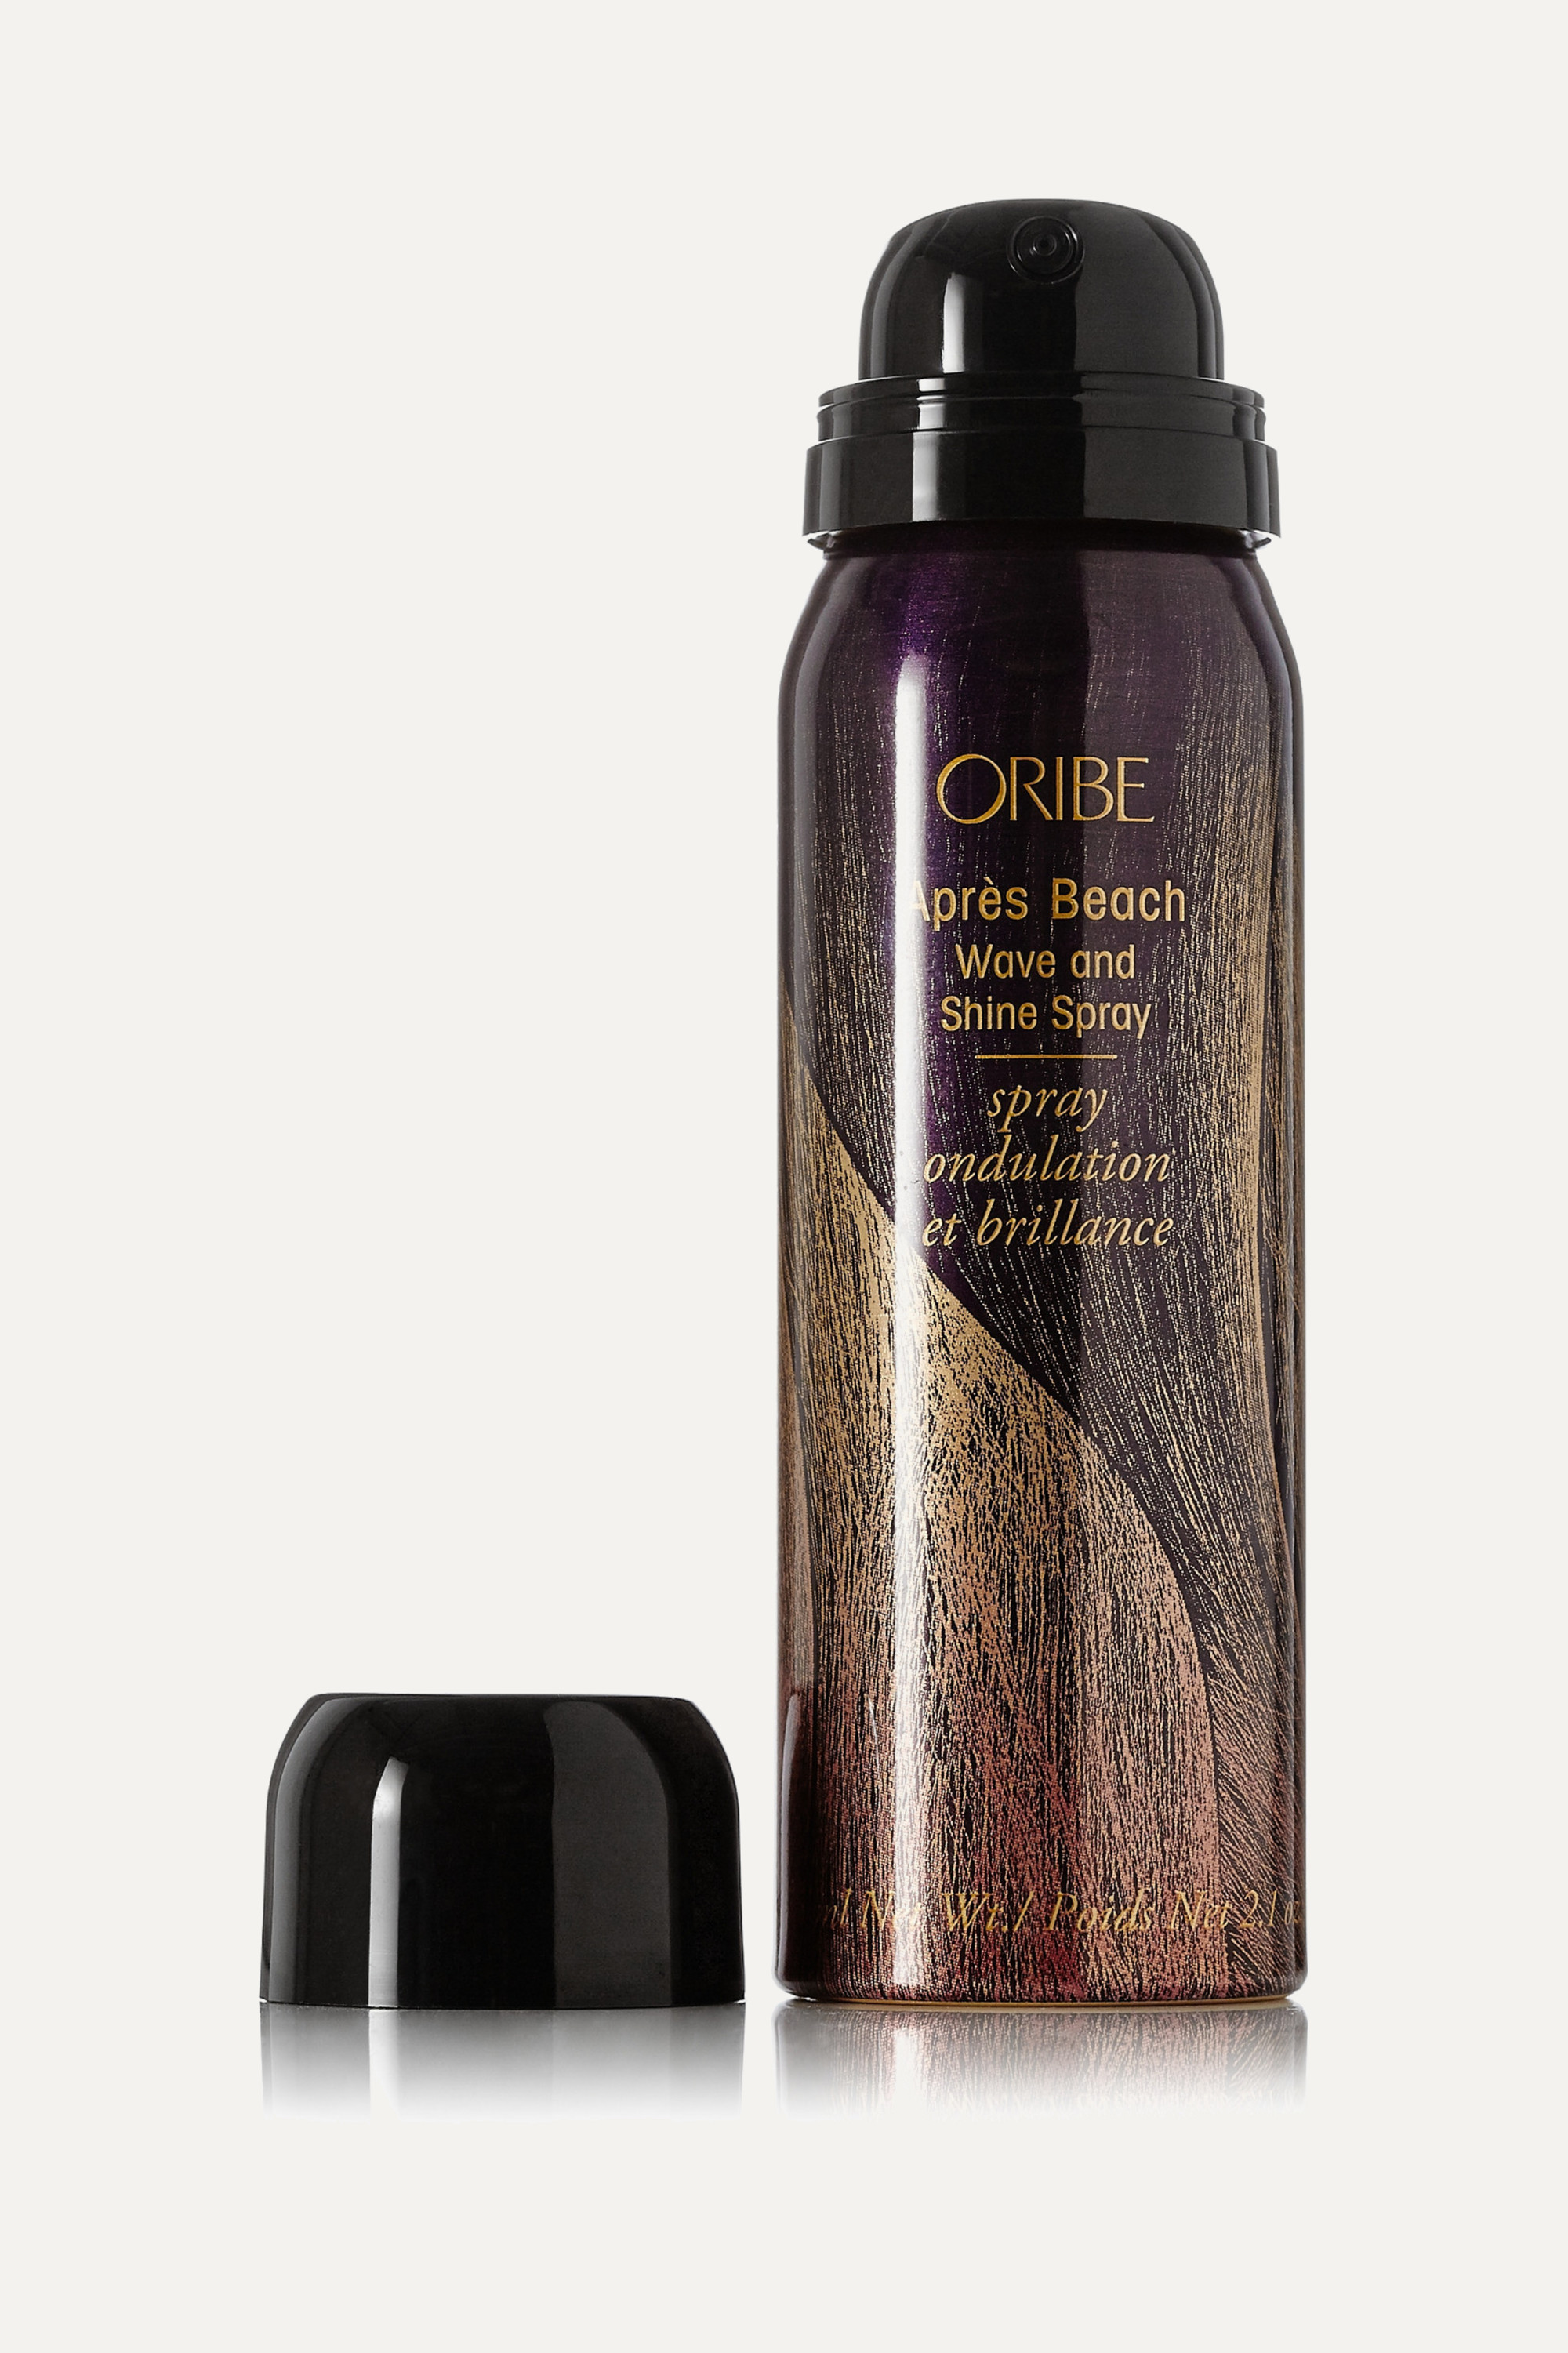 Oribe Travel-Sized Aprés Beach Wave and Shine Spray, 75ml